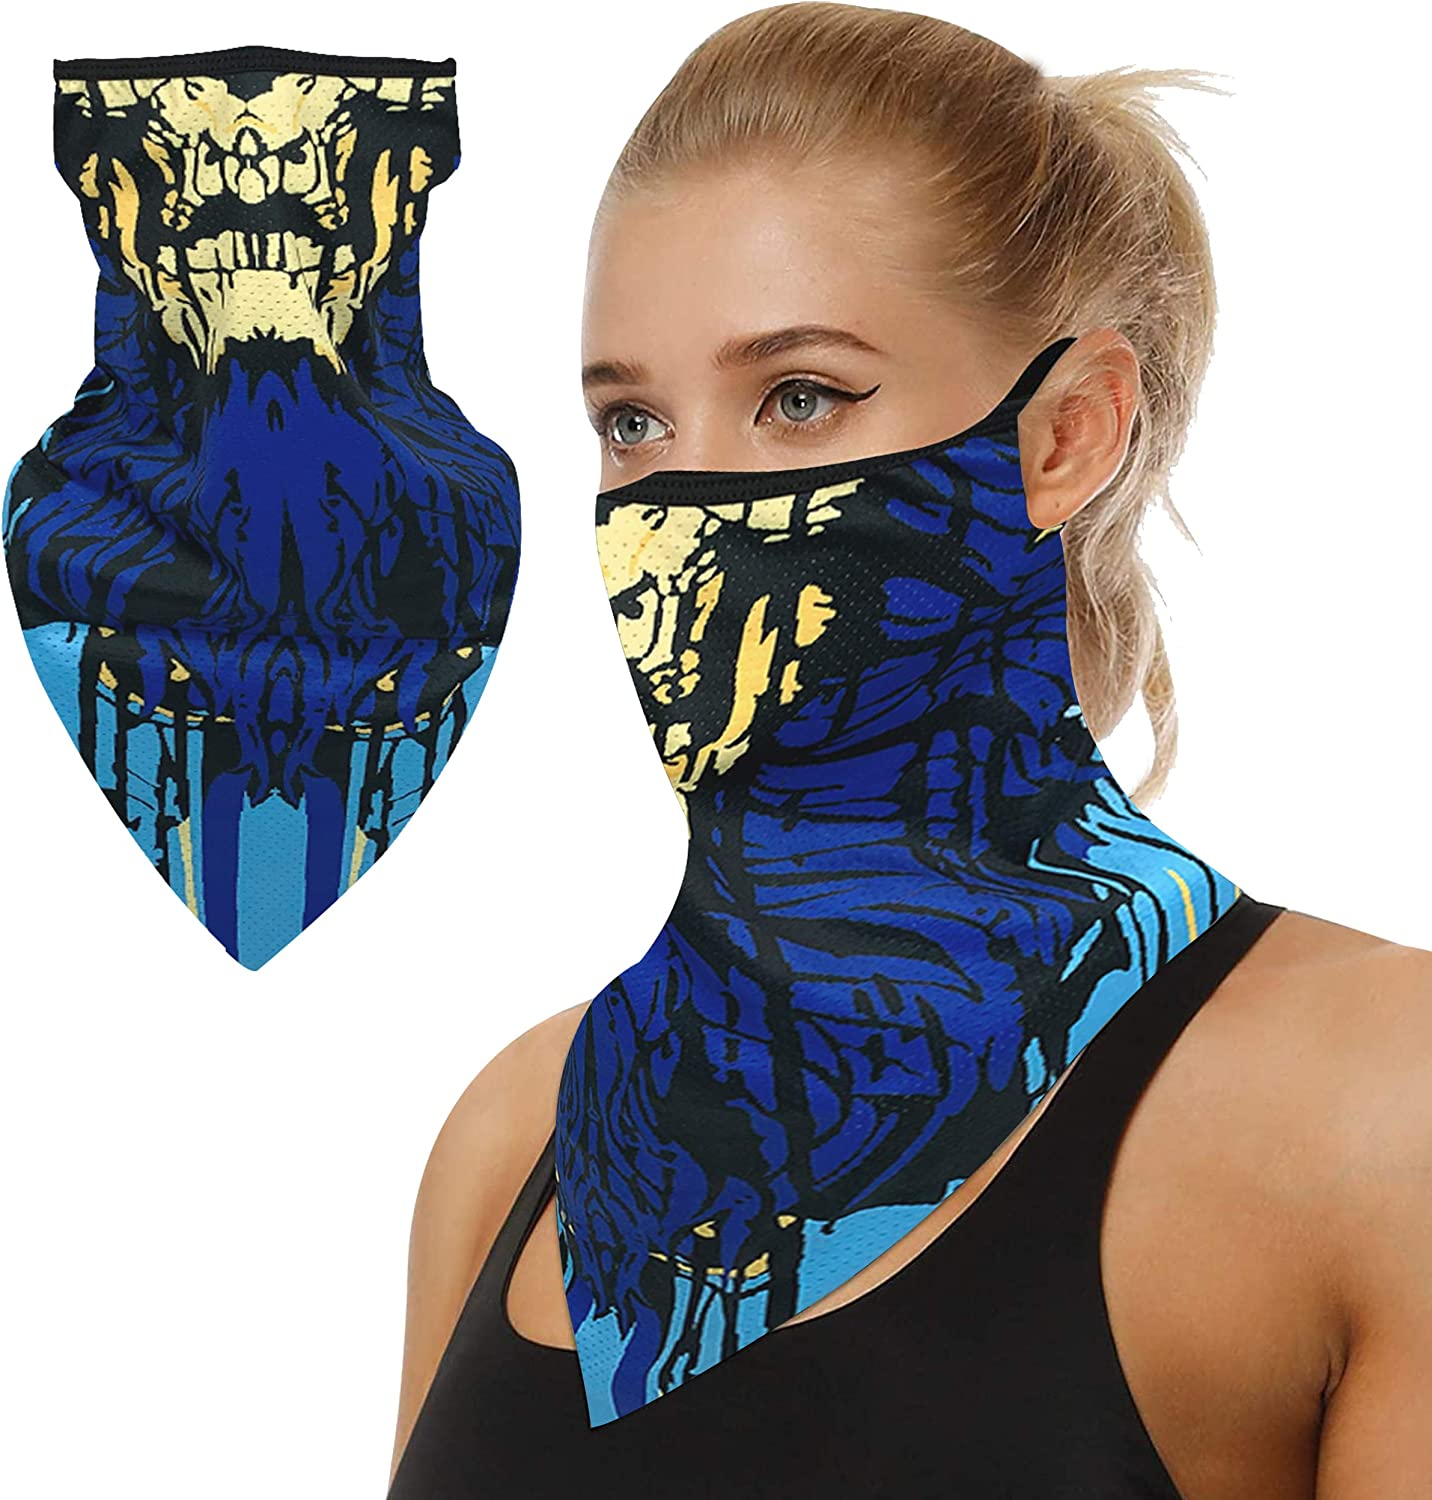 Bandana Mail order Face Scarf Spring new work Reusable Washable Neck Wom Cover Gaiter Cloth